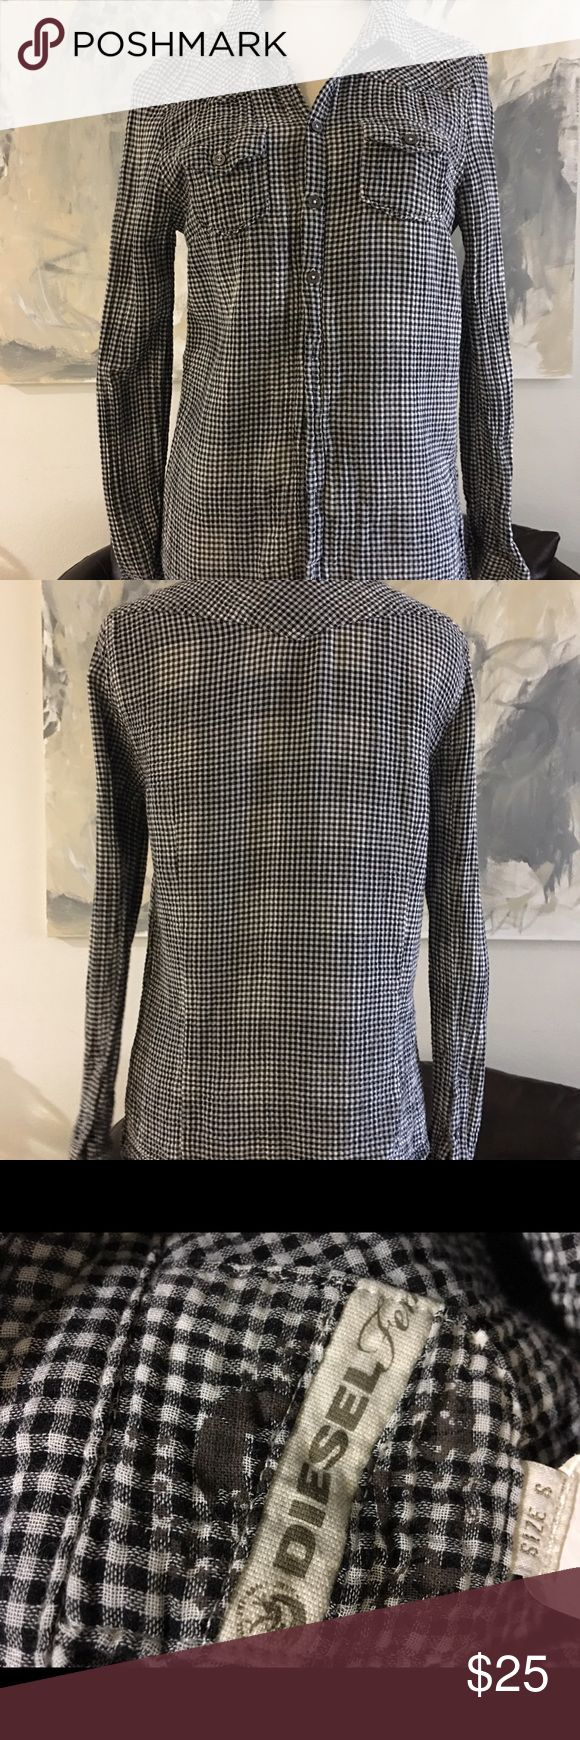 Diesel Western Gingham Checkered Black White S Vguc Diesel Tops Button Down Shirts